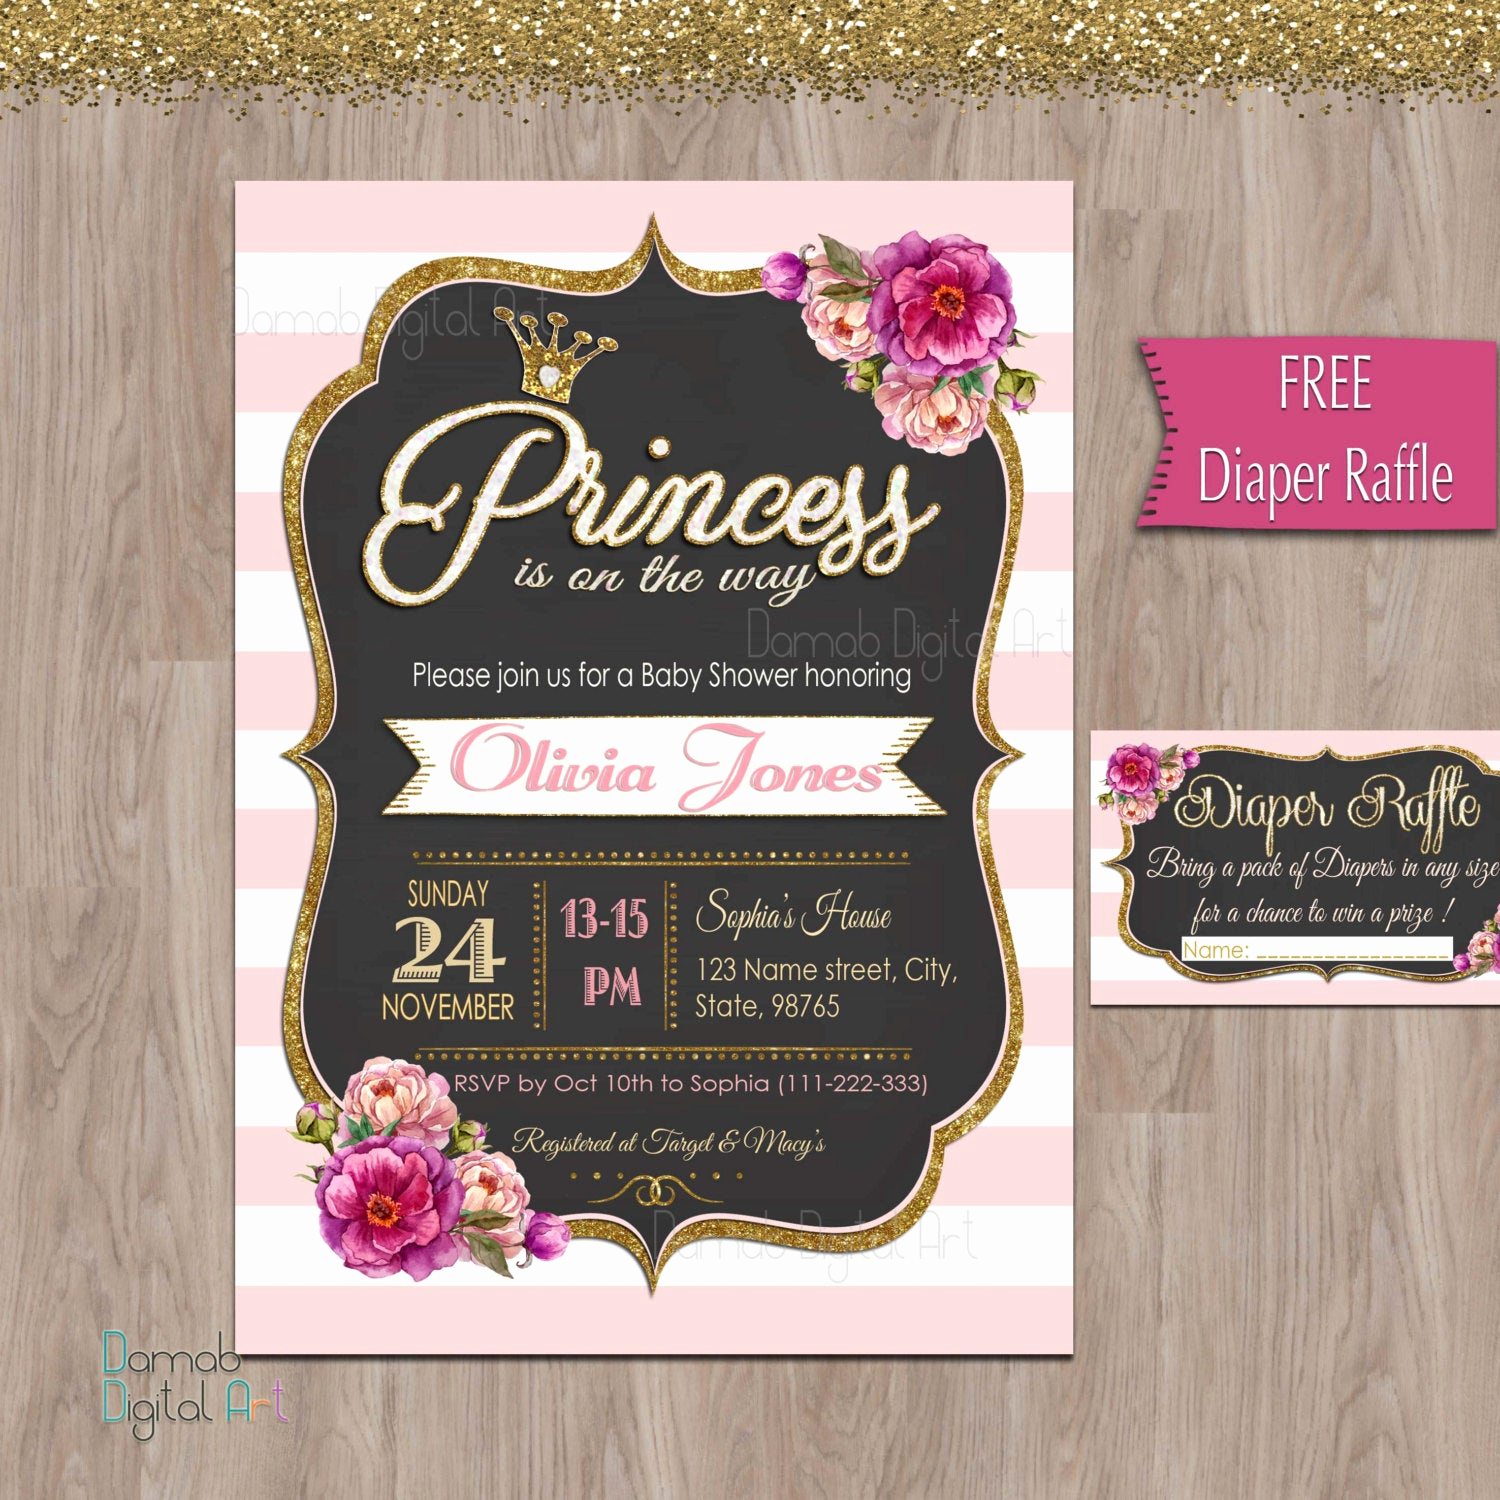 Princess Baby Shower Invitation Lovely Baby Shower Invitation Princess Princess Baby Shower